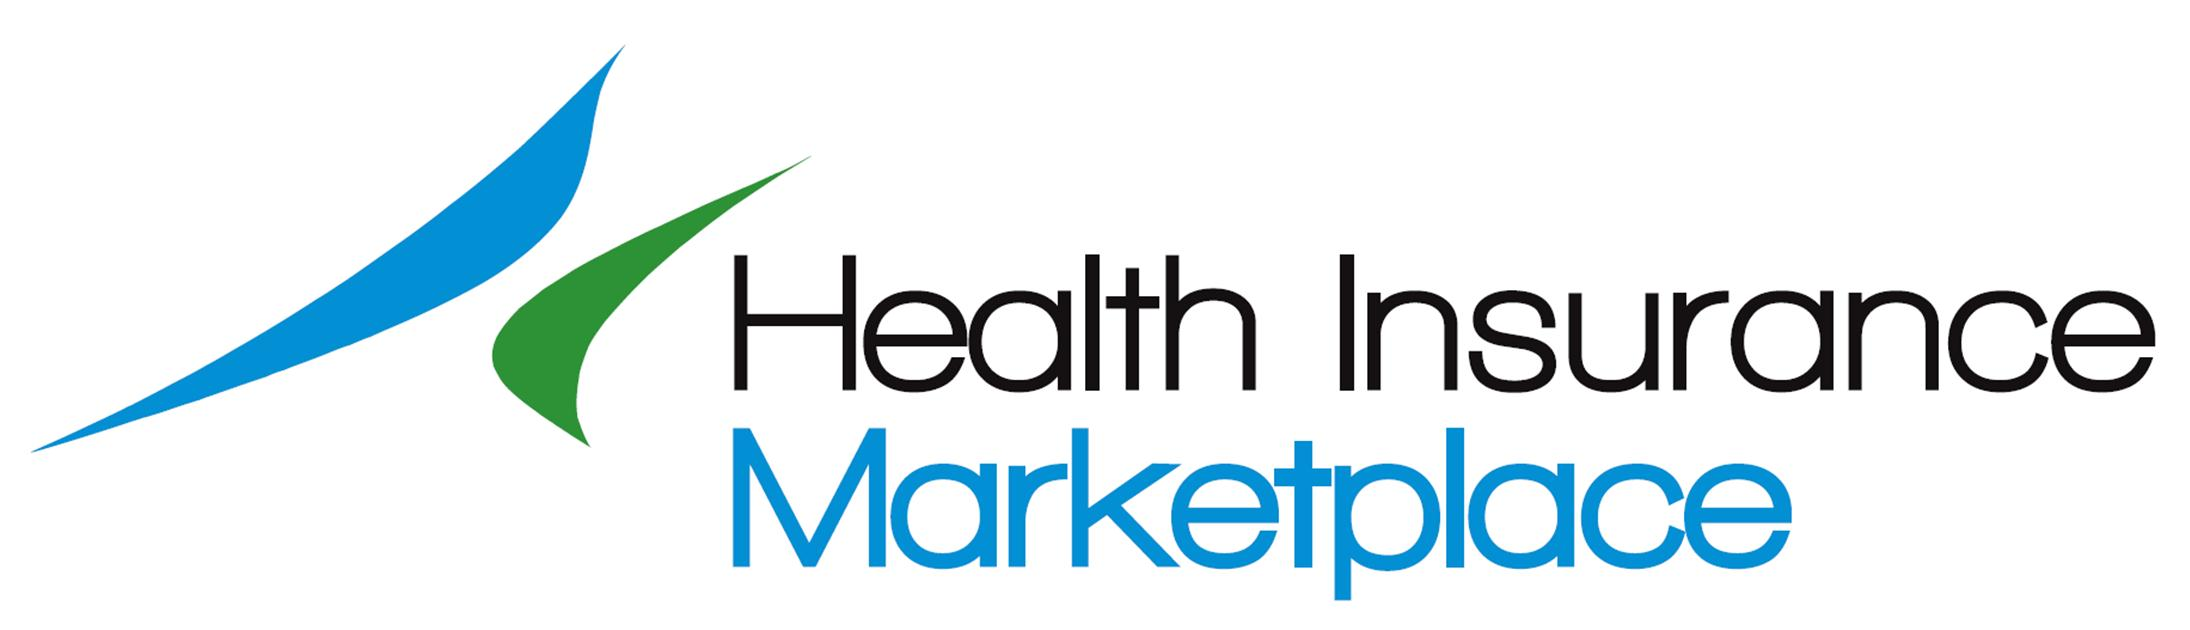 Health-Insurance-Marketplace-stacked-logo.jpg